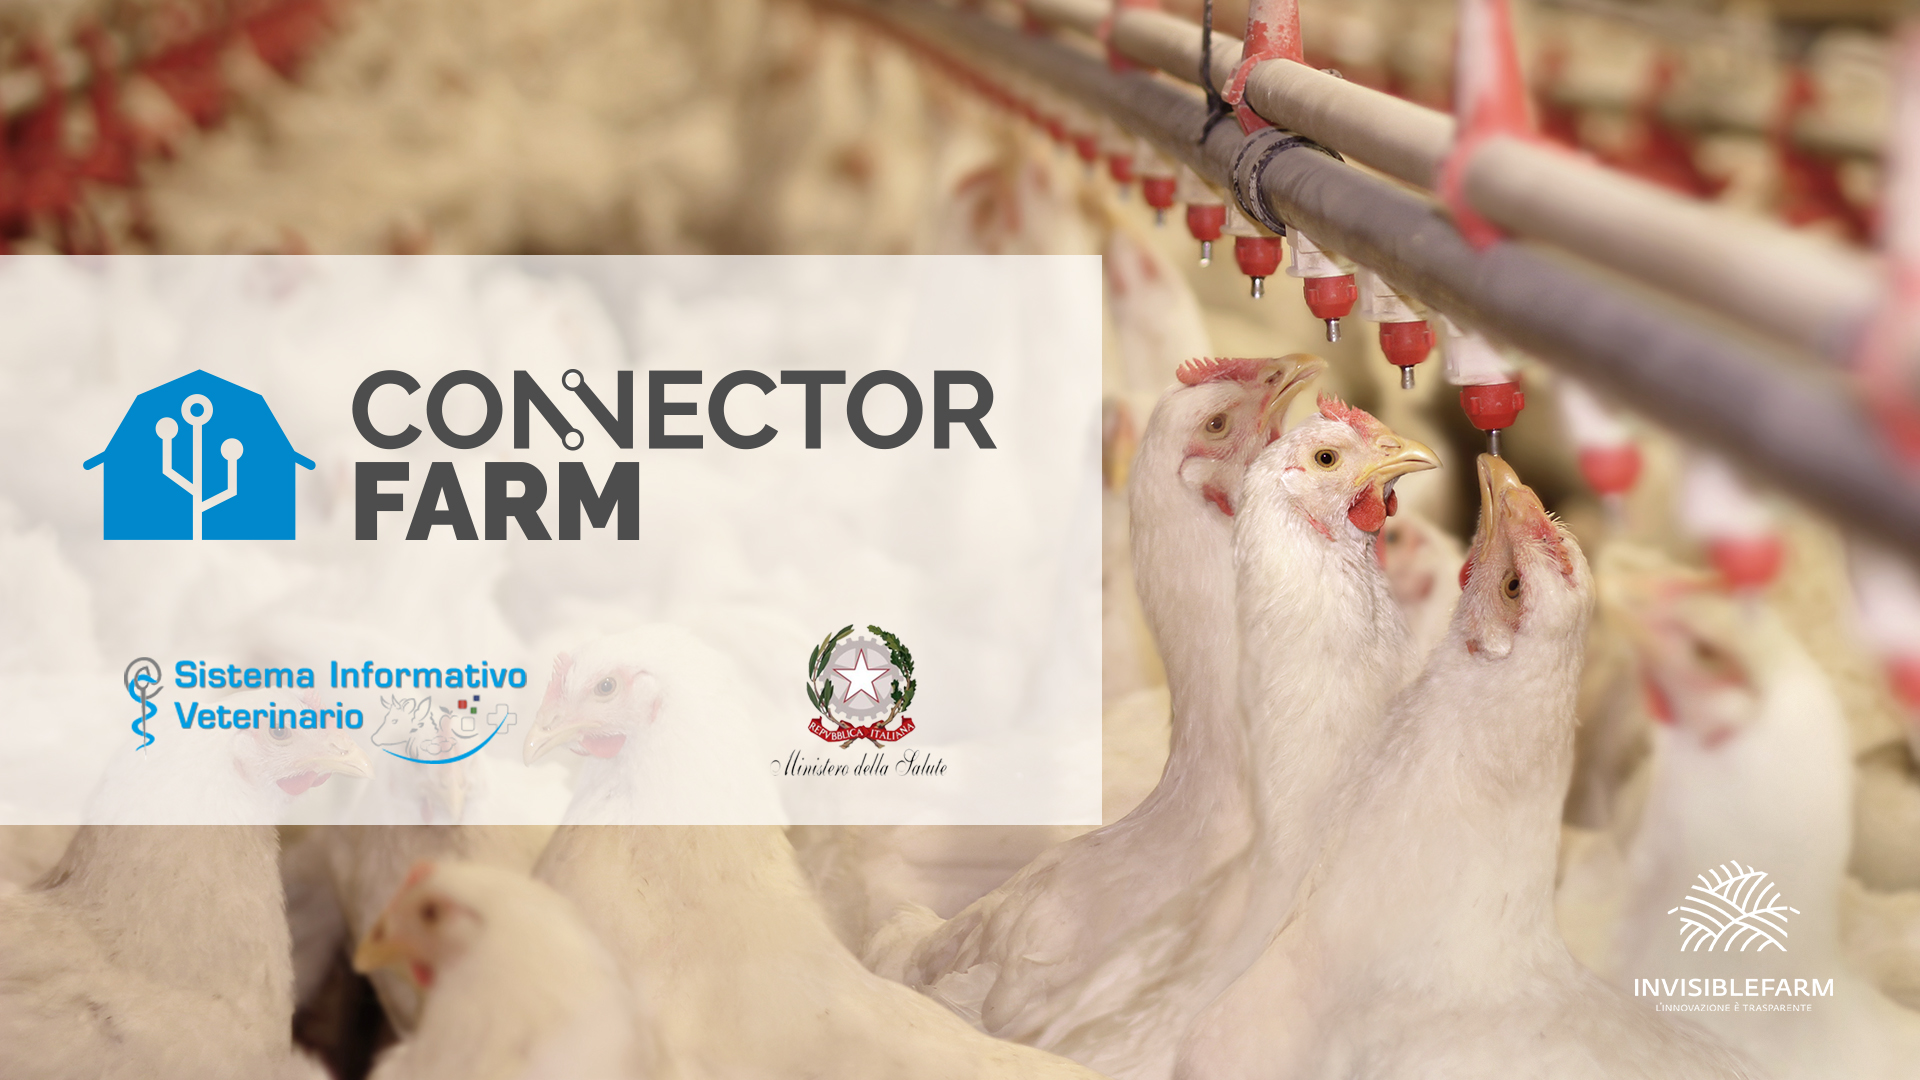 Connectorfarm